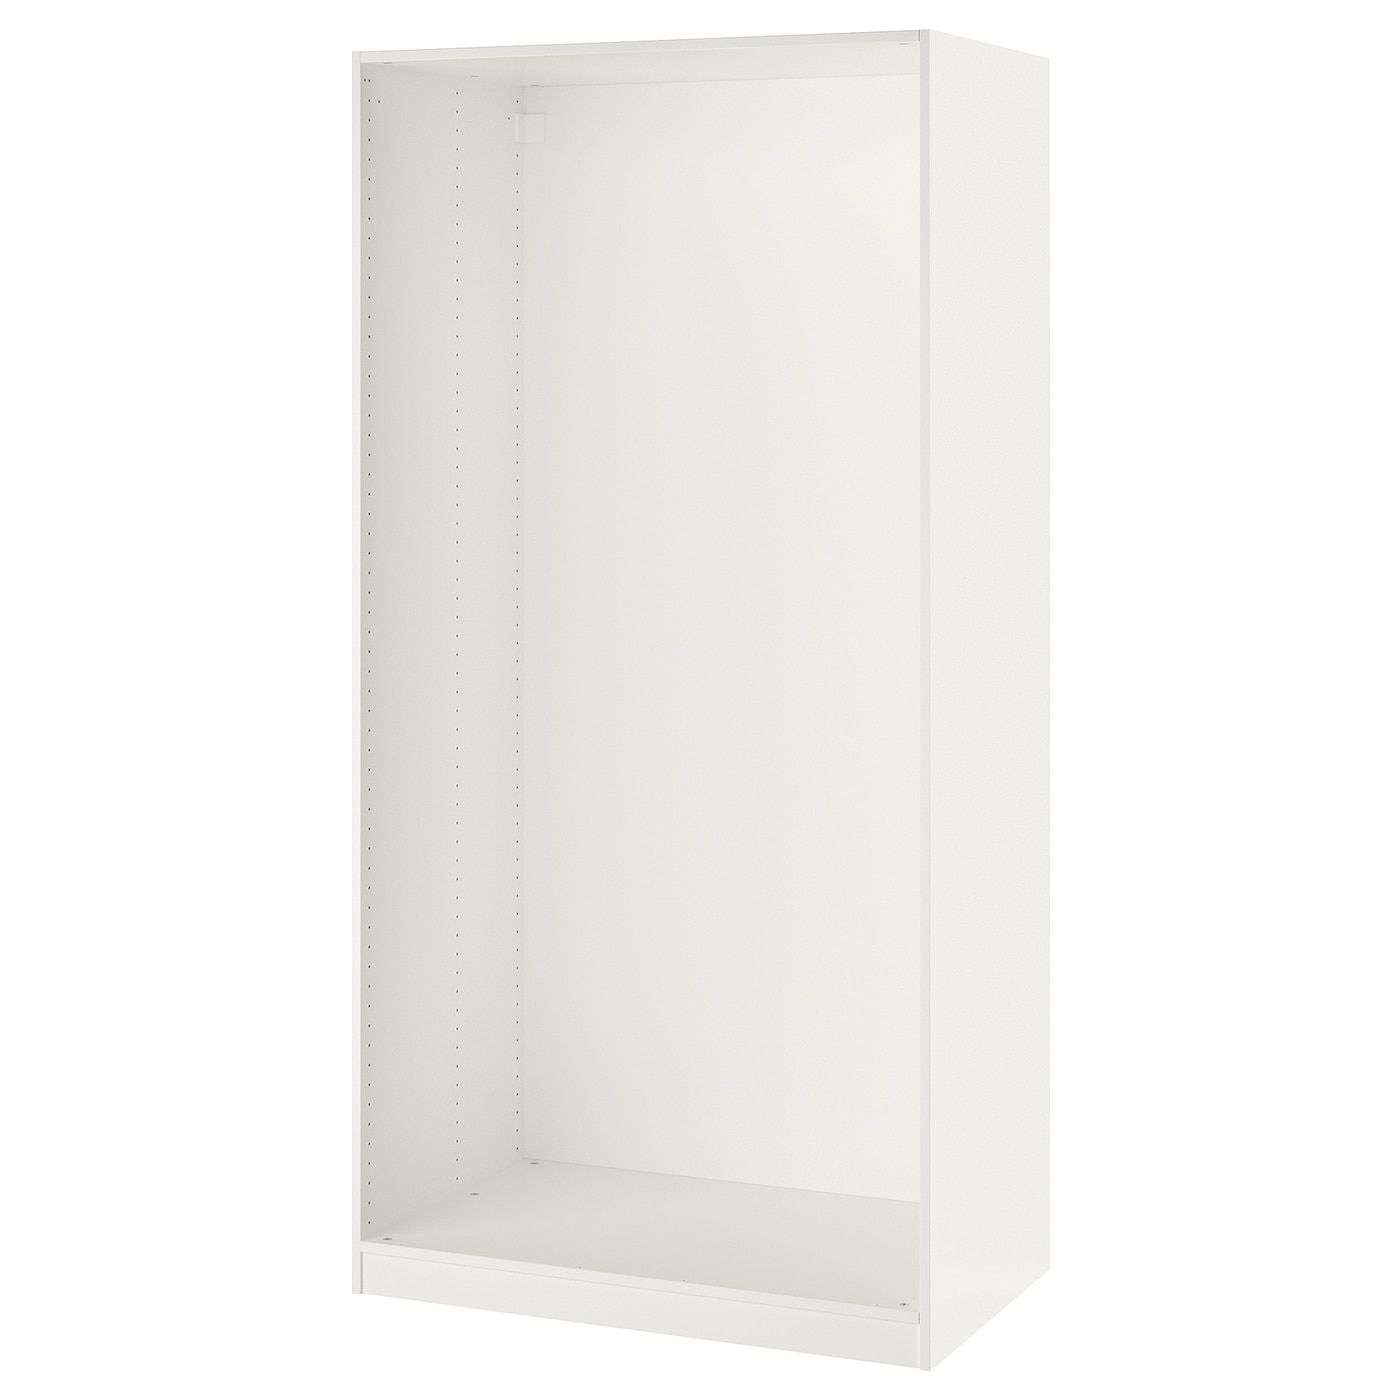 IKEA PAX wardrobe frame 10 year guarantee. Read about the terms in the guarantee brochure.